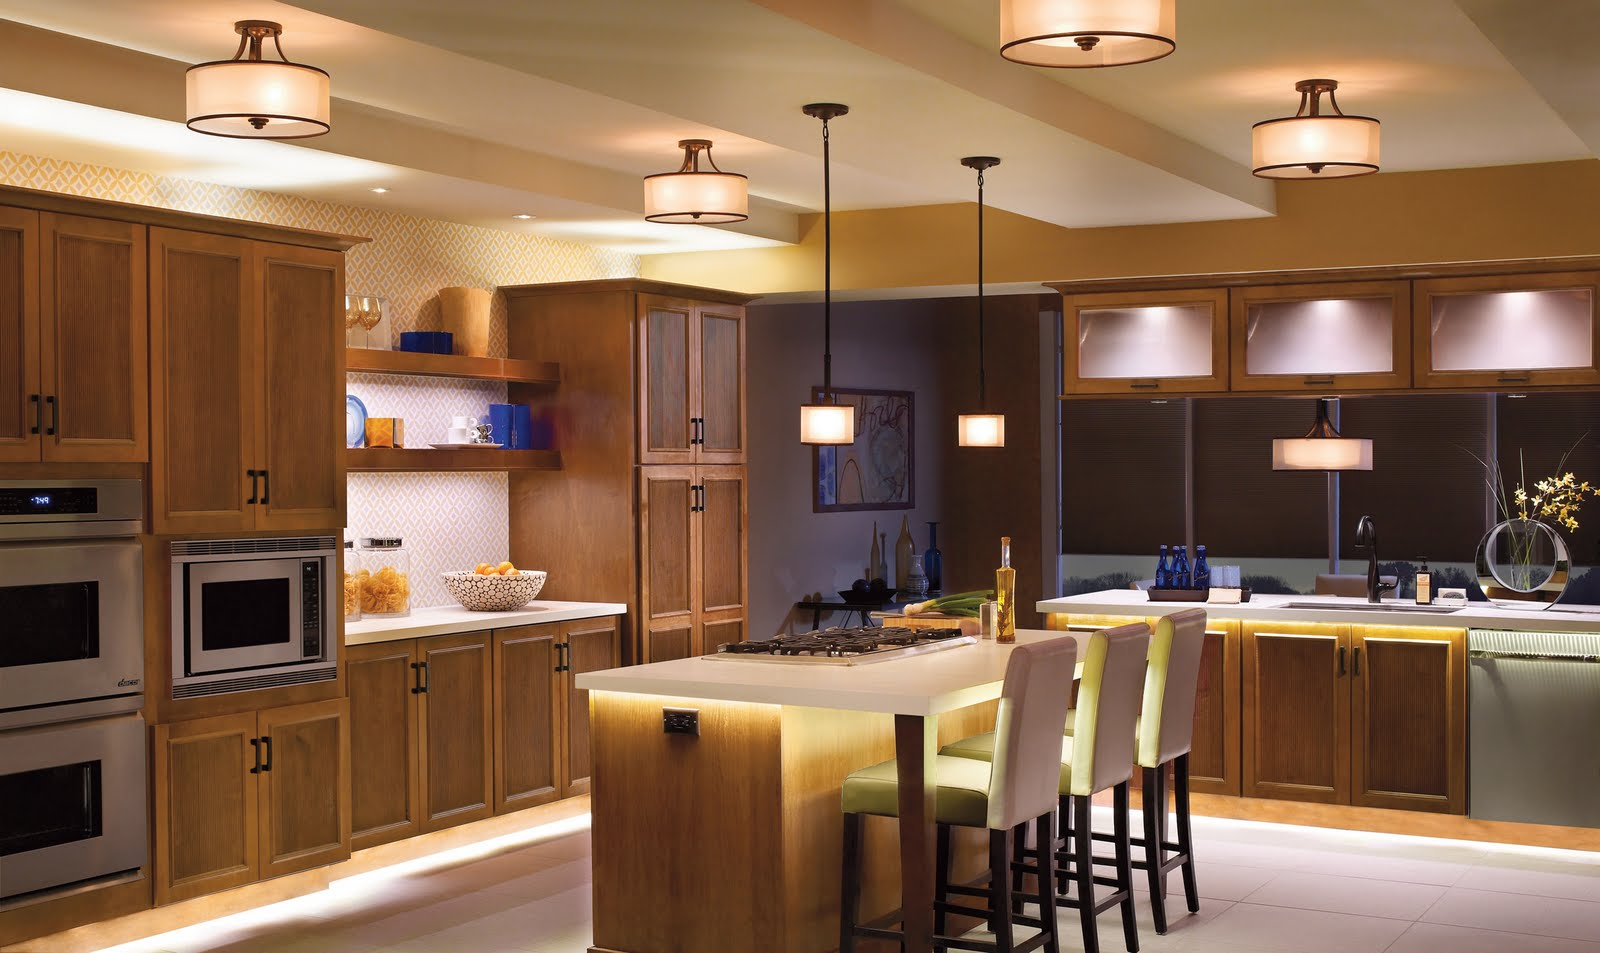 Kitchen Lighting Kitchen Lighting Design Tips Eixei Home Improvement